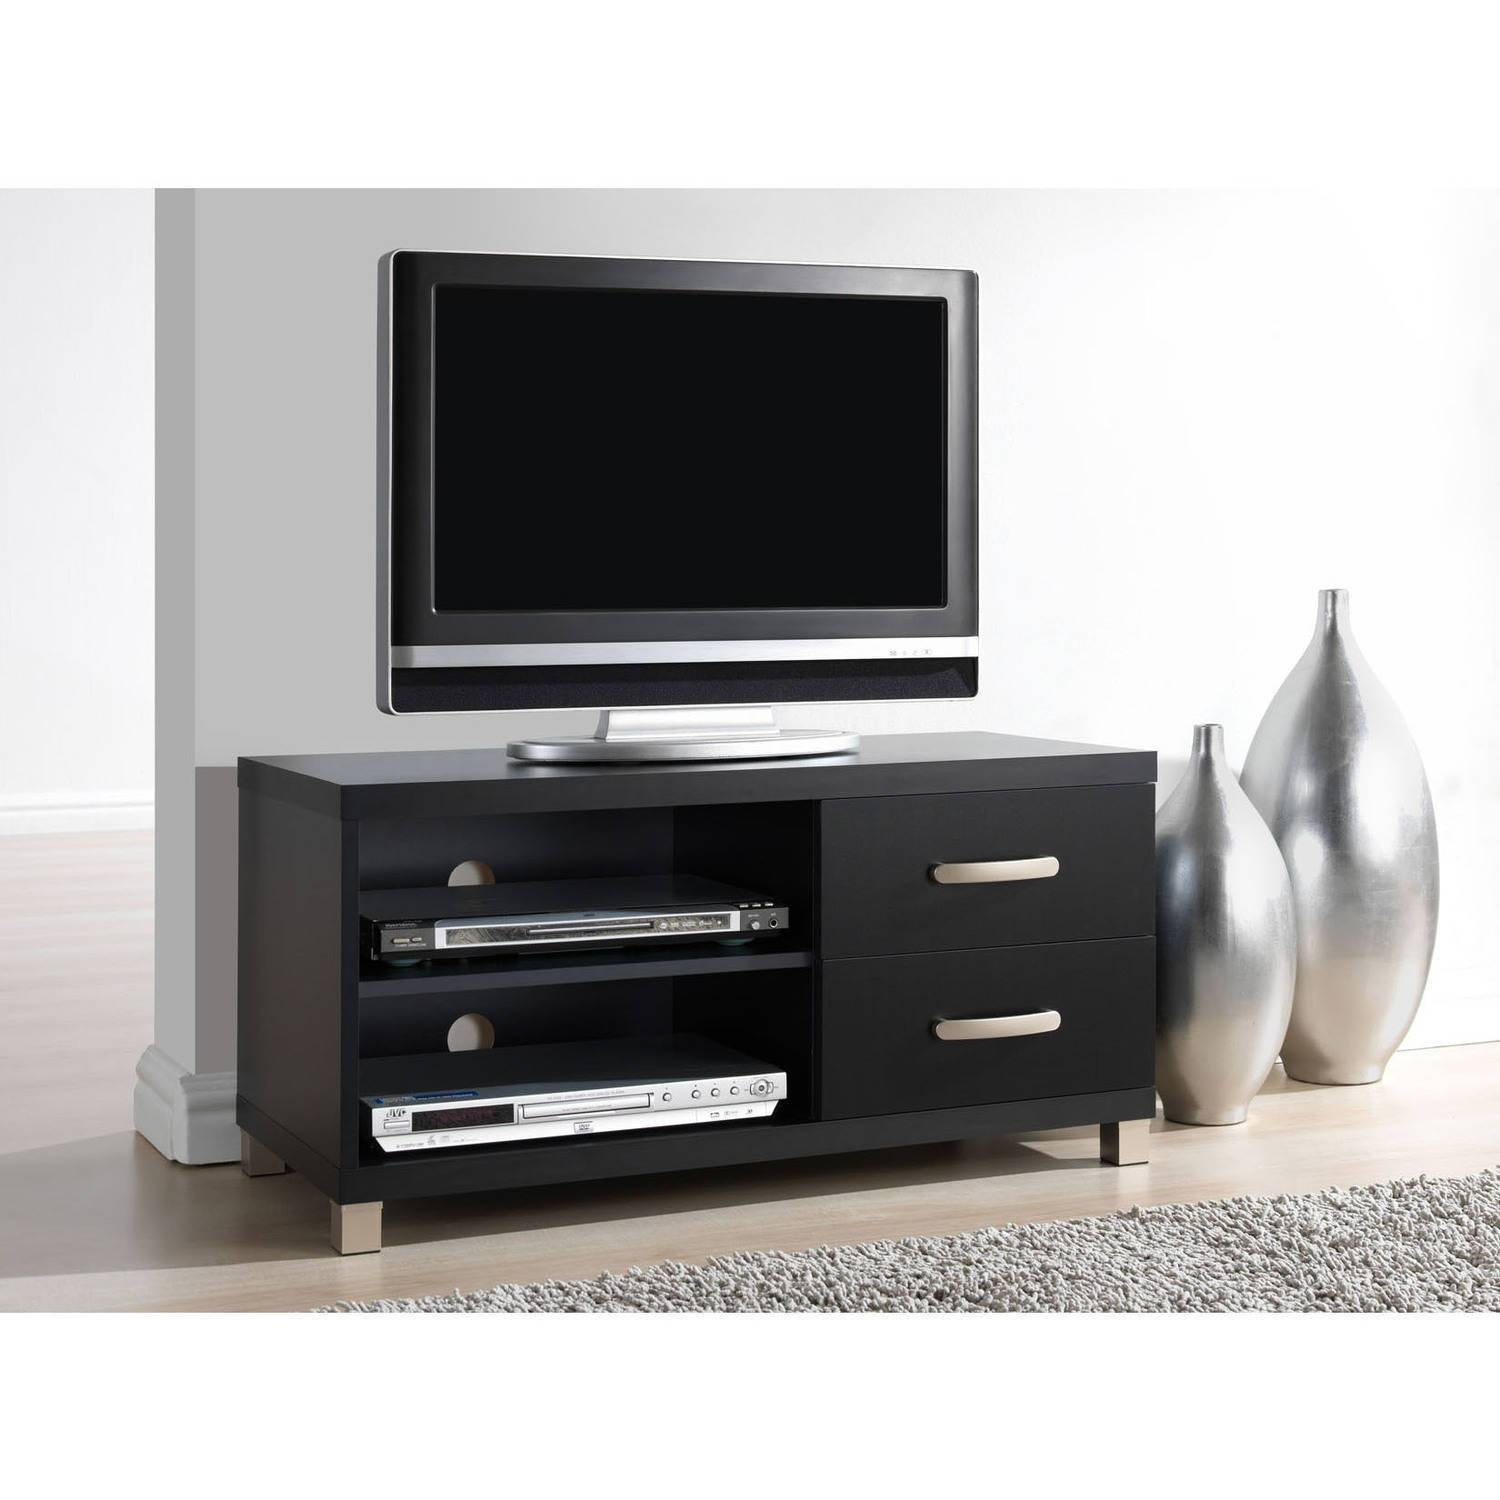 Techni Mobili 2 Drawer Tv Cabinet, Black - Walmart with regard to Black Tv Cabinets With Drawers (Image 11 of 15)